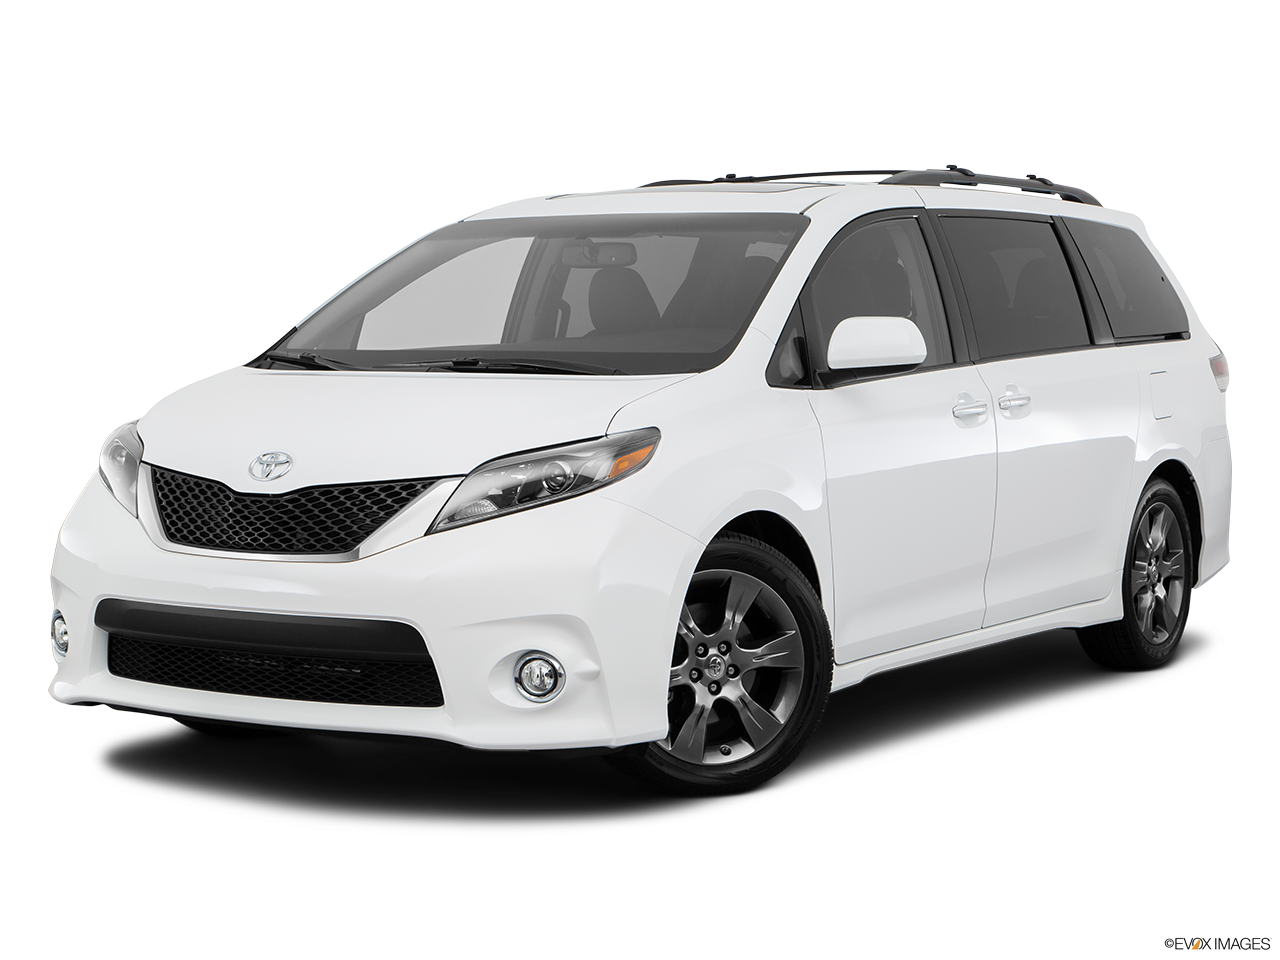 compare honda odyssey vs toyota sienna vs nissan quest. Black Bedroom Furniture Sets. Home Design Ideas